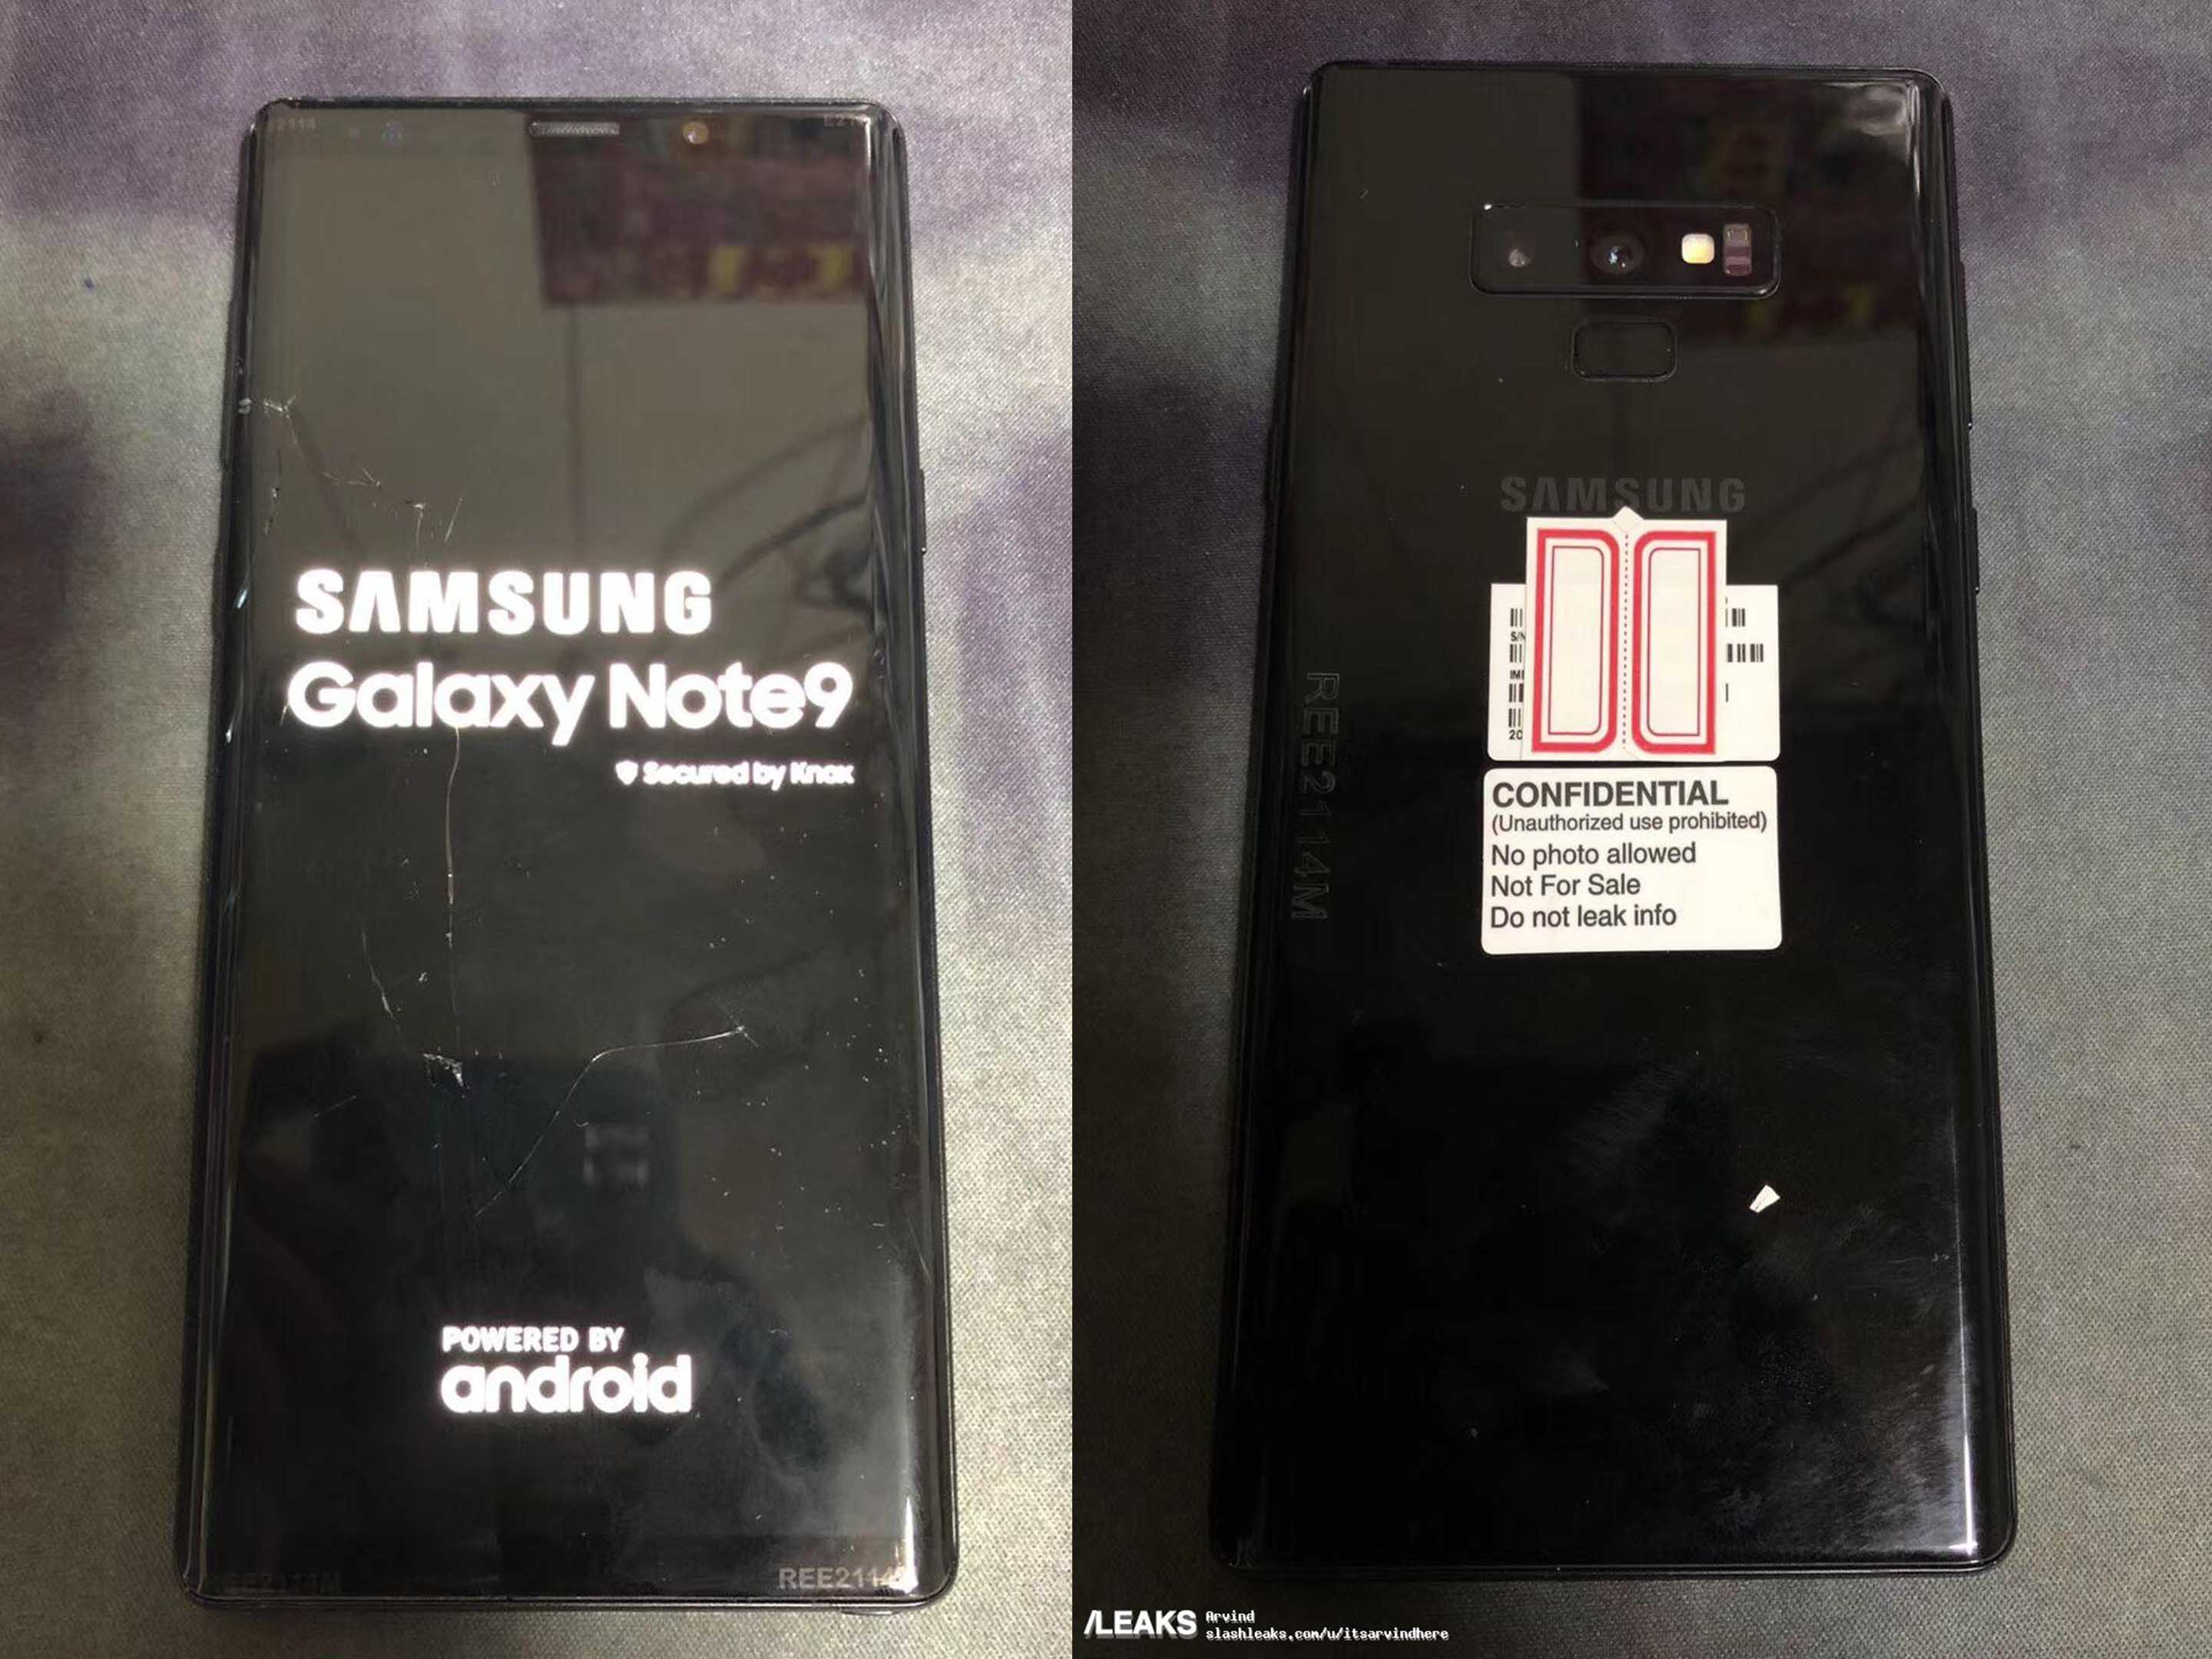 Note 9 leaked photos